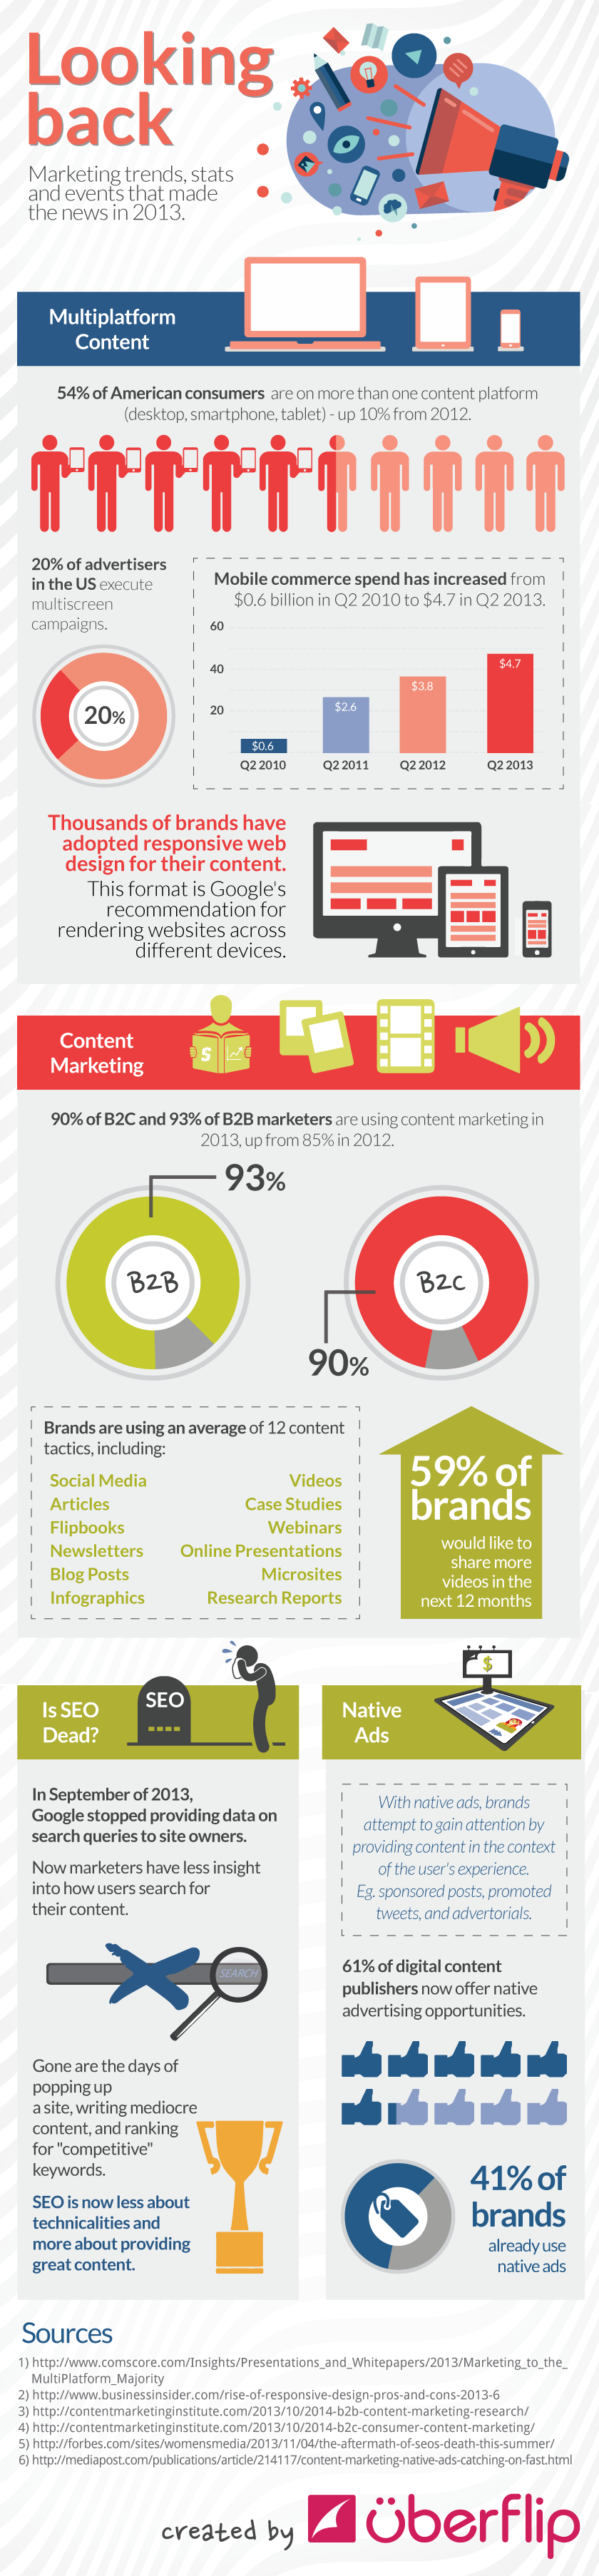 marketing_2013_infographic_uberflip